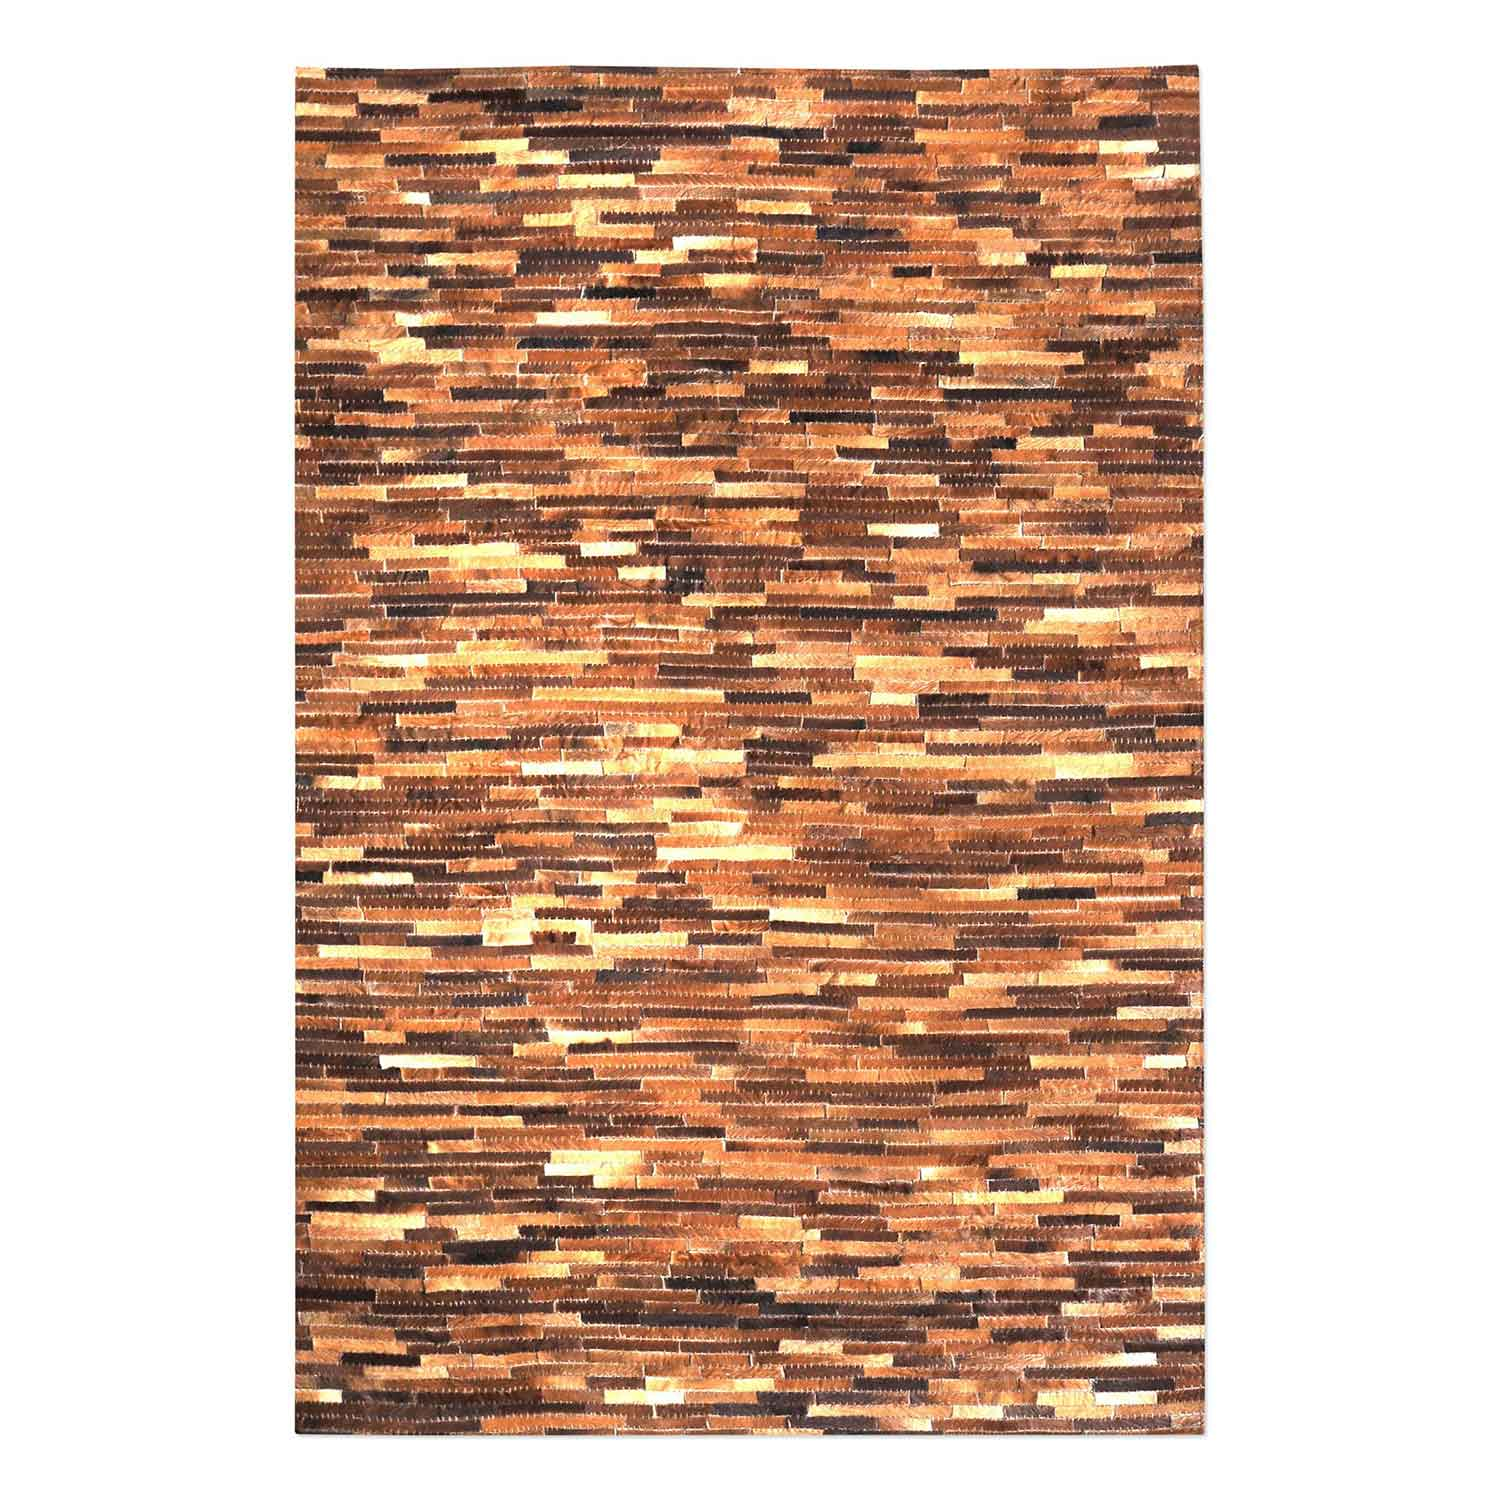 Uttermost Tiago 9 x 12 Rug - Medium Brown